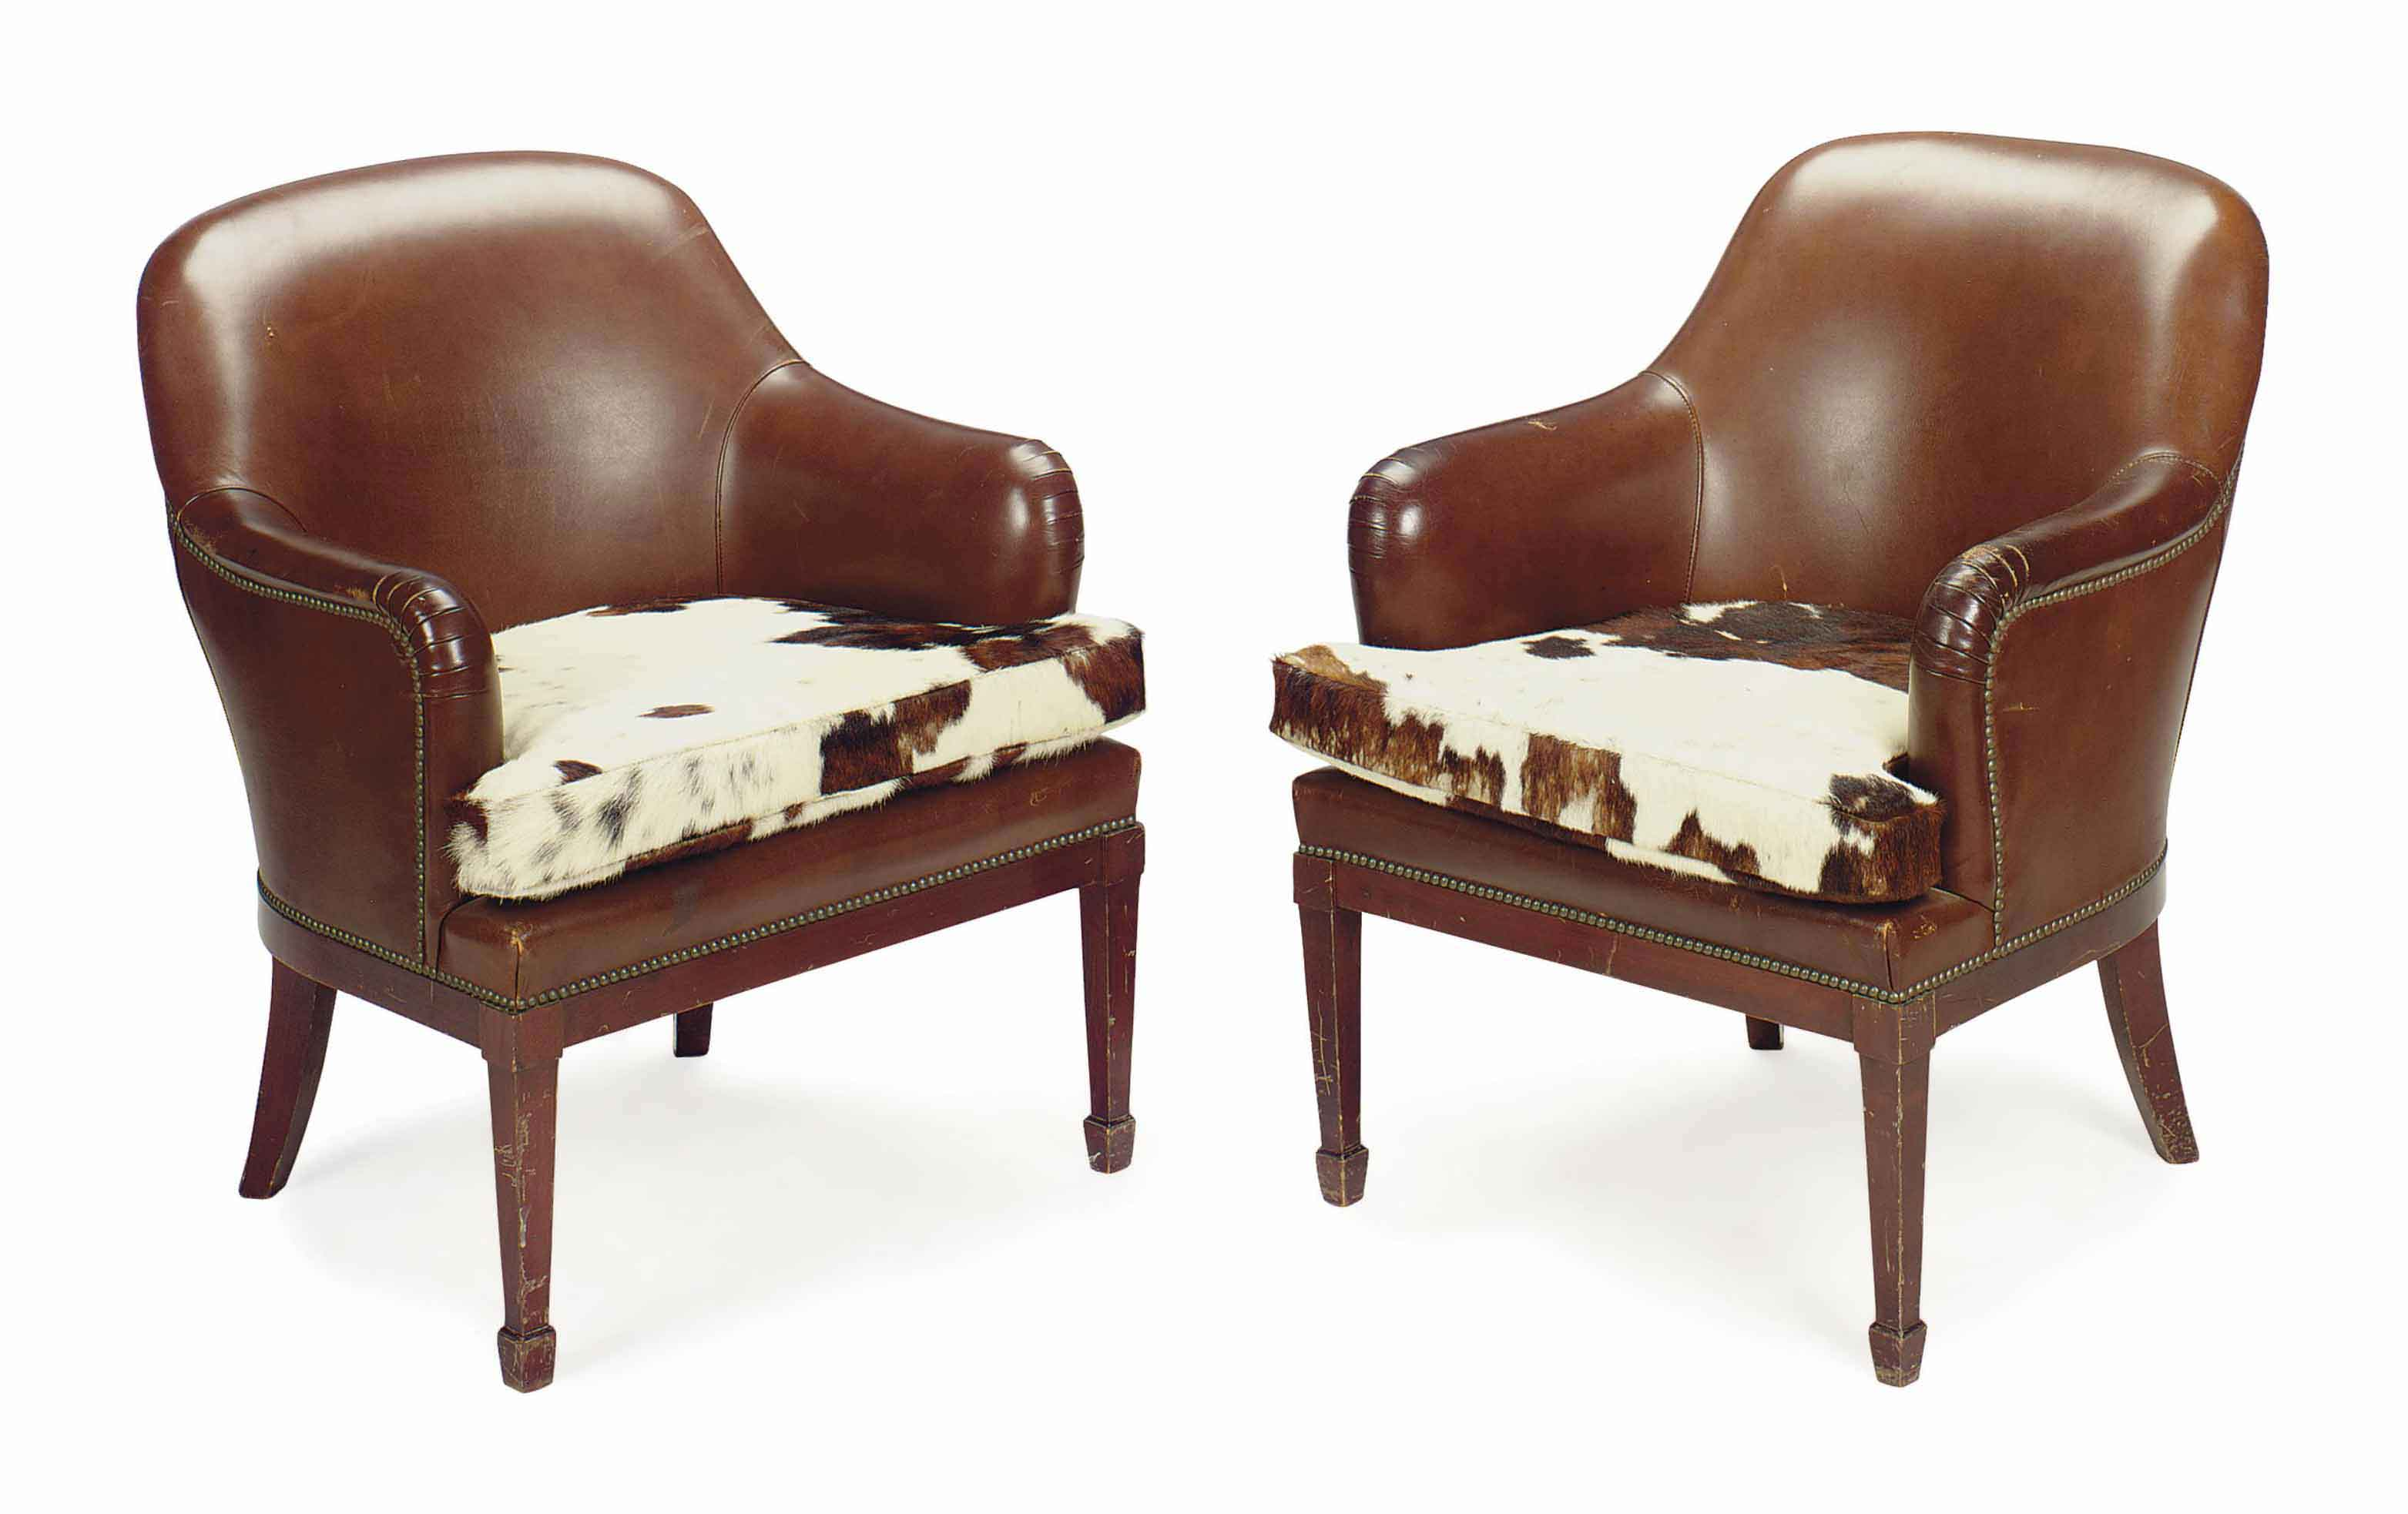 A PAIR OF FRENCH BROWN LEATHER AND COWHIDE CLUB CHAIRS,